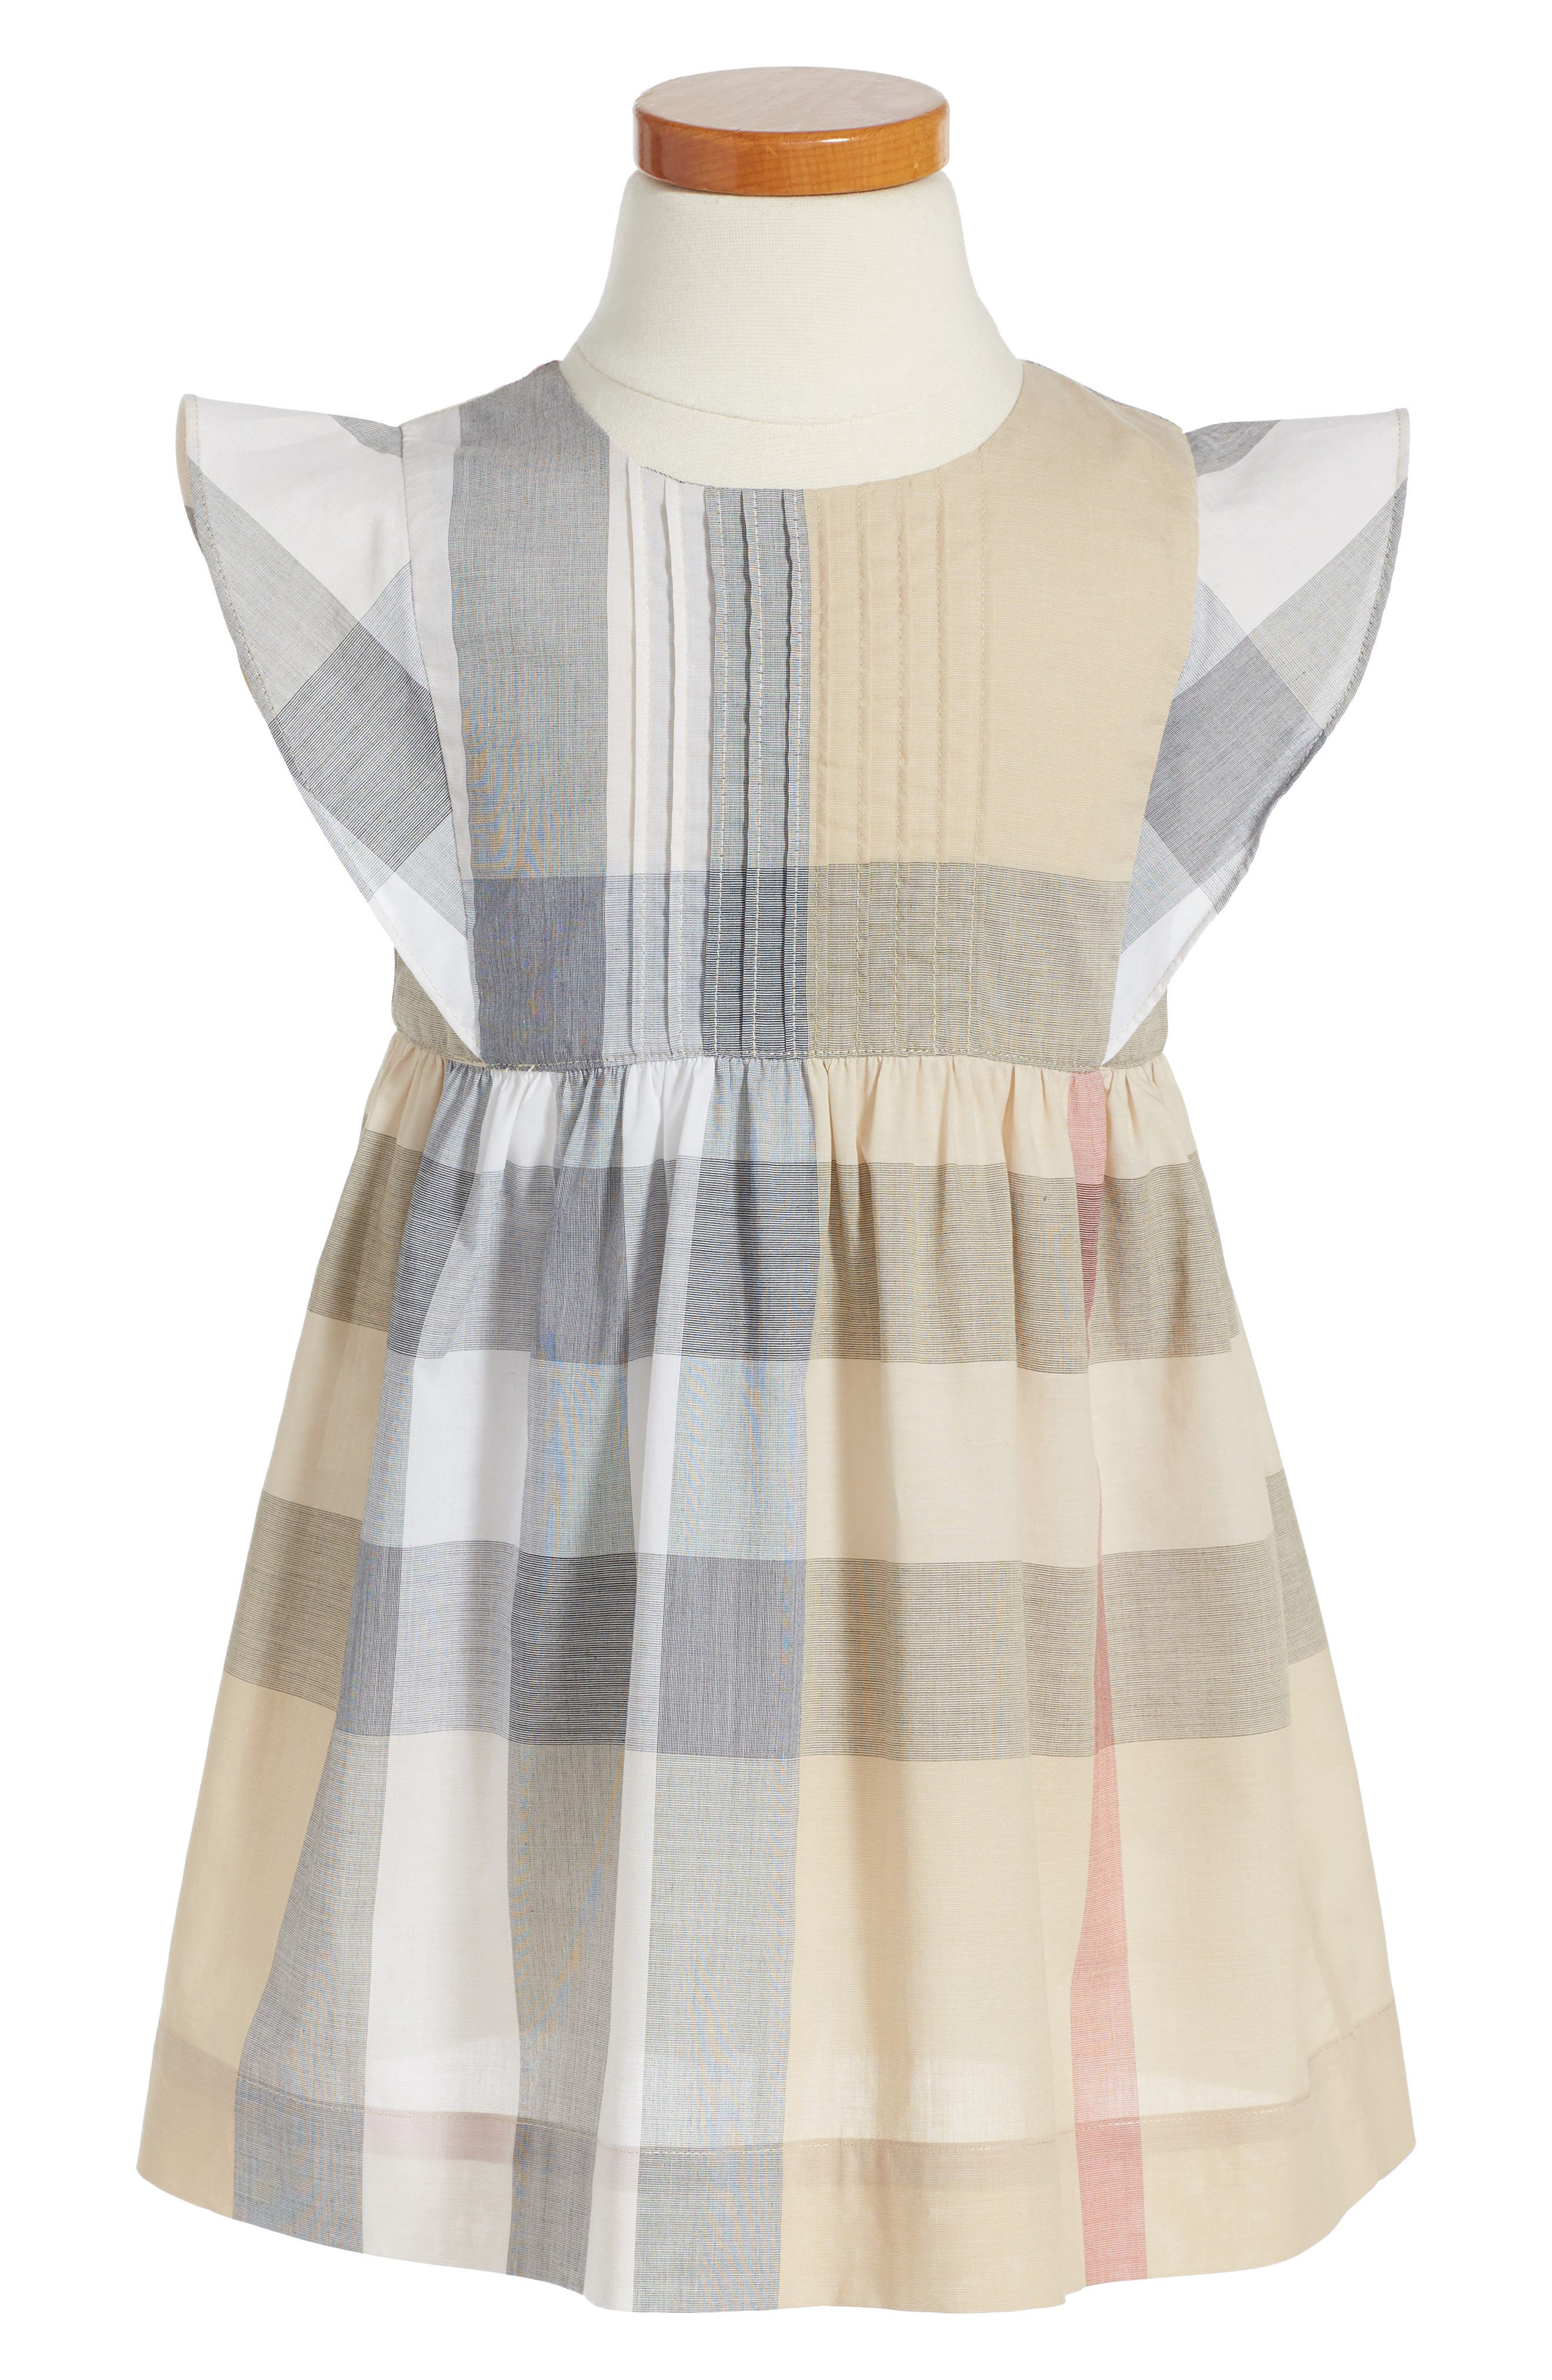 Burberry Gertrude Check Dress (Little Girls & Big Girls)